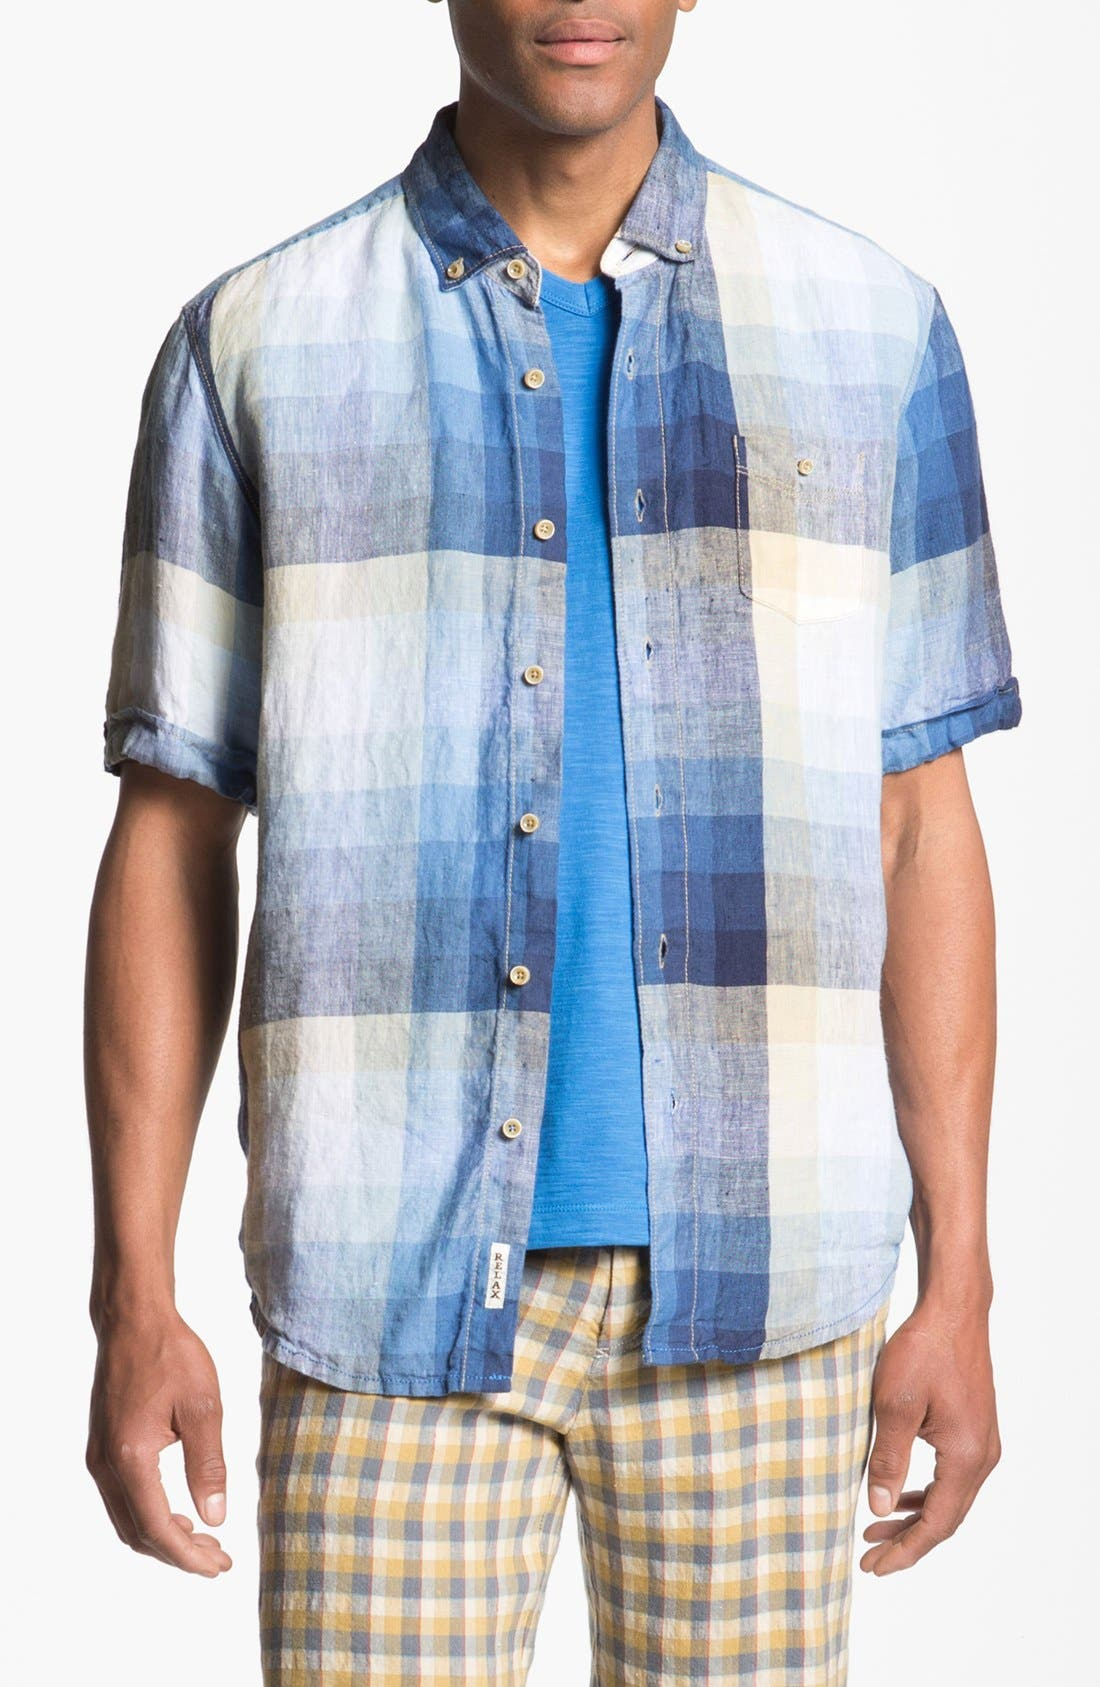 Alternate Image 1 Selected - Tommy Bahama 'Pacific Breezer' Short Sleeve Linen Sport Shirt